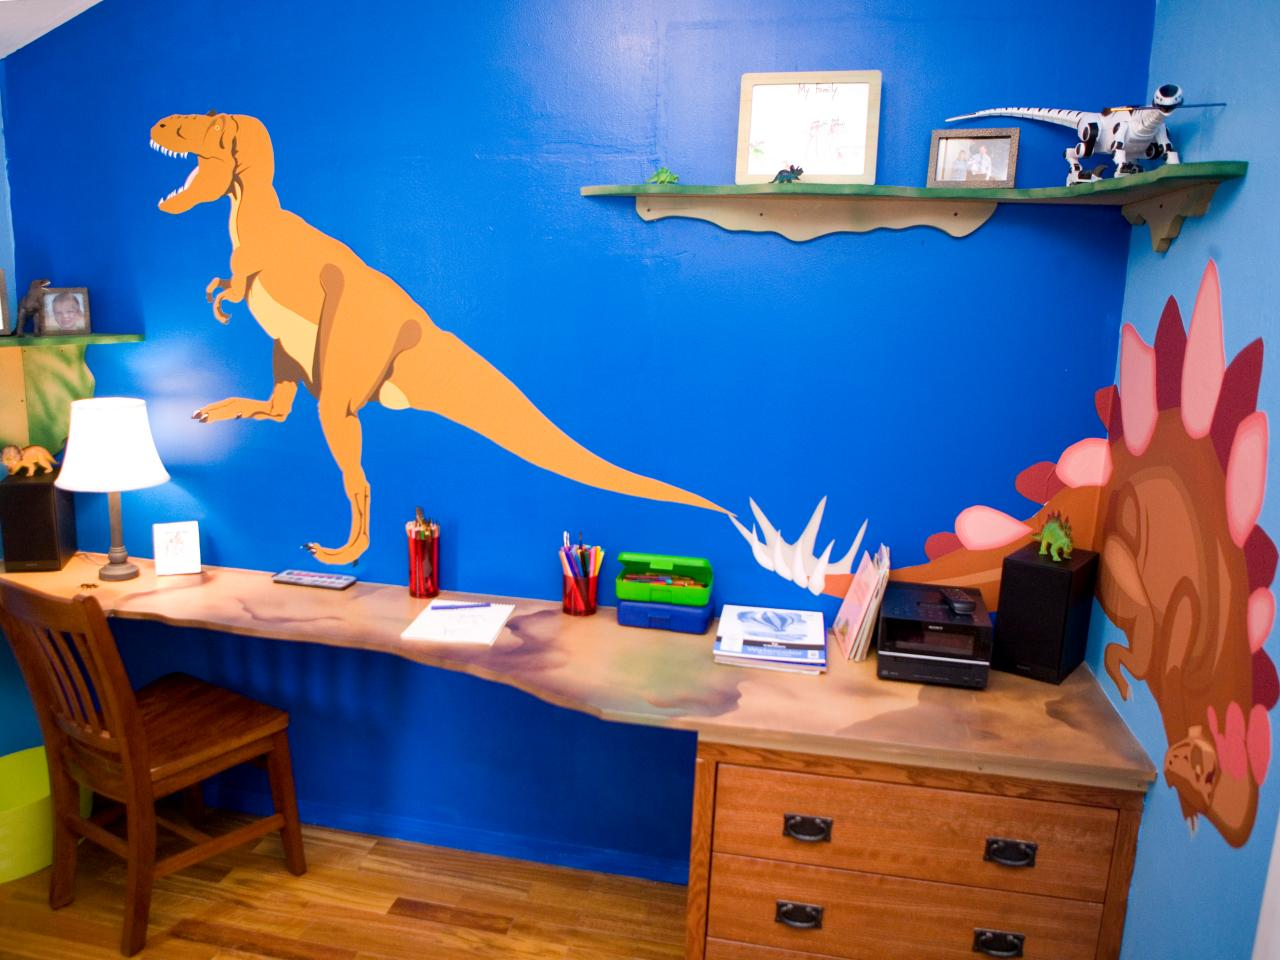 Candice 39 s design tips kids 39 room makeovers hgtv for Dinosaur bedroom ideas boys